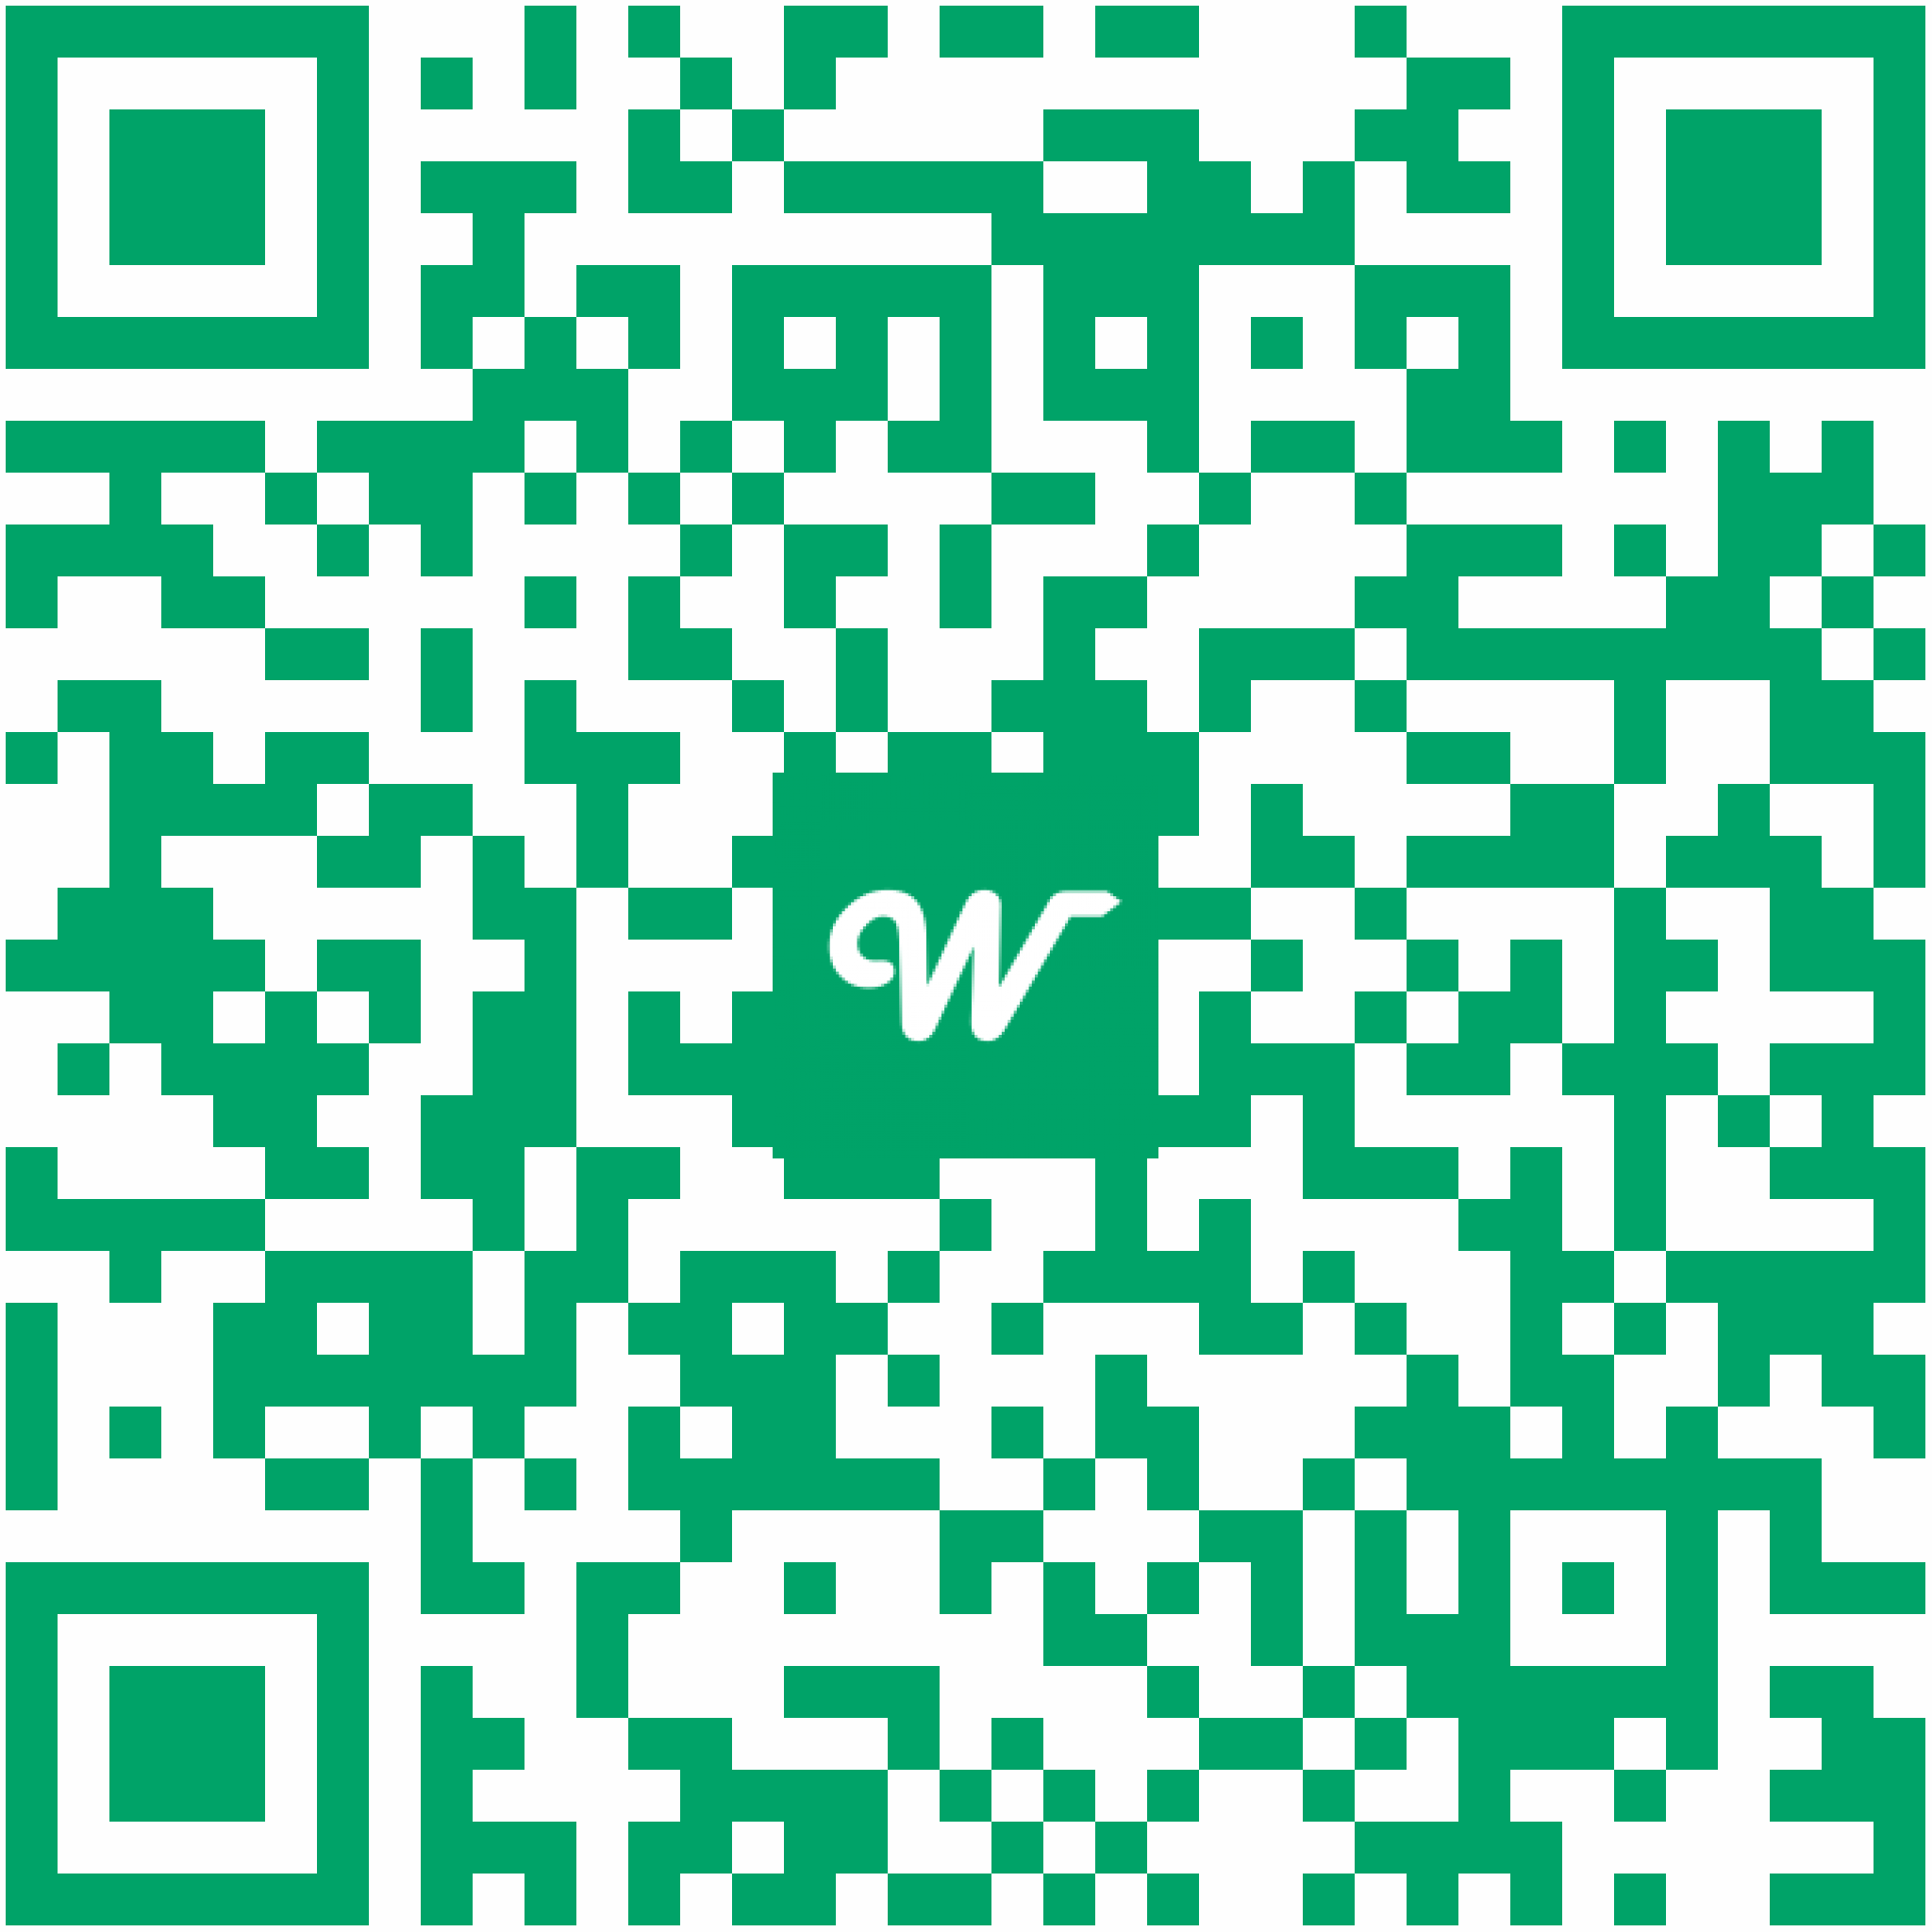 Printable QR code for Sun Inns Hotel Sunway City, Ipoh